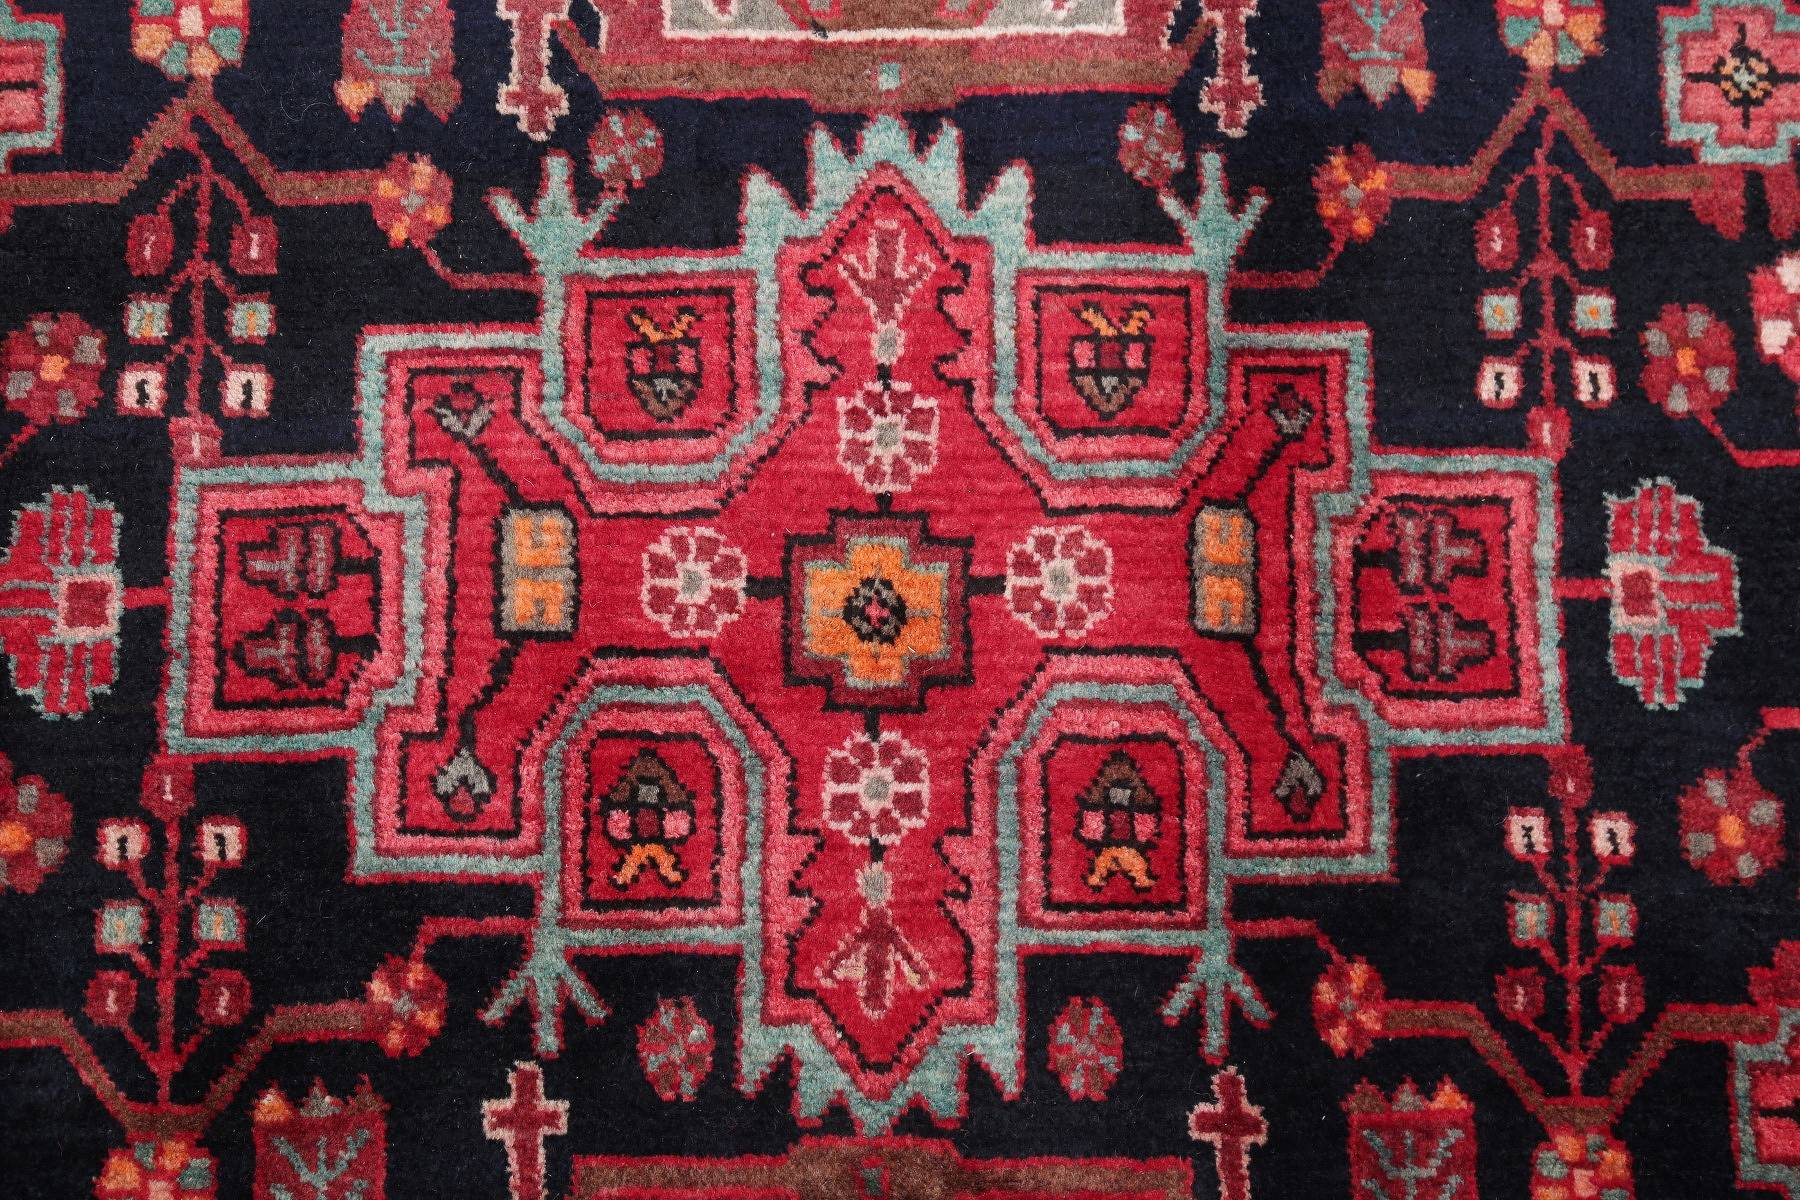 Black Tribal Geometric Nahavand Hamedan Persian Hand-Knotted 5x7 Wool Area Rug